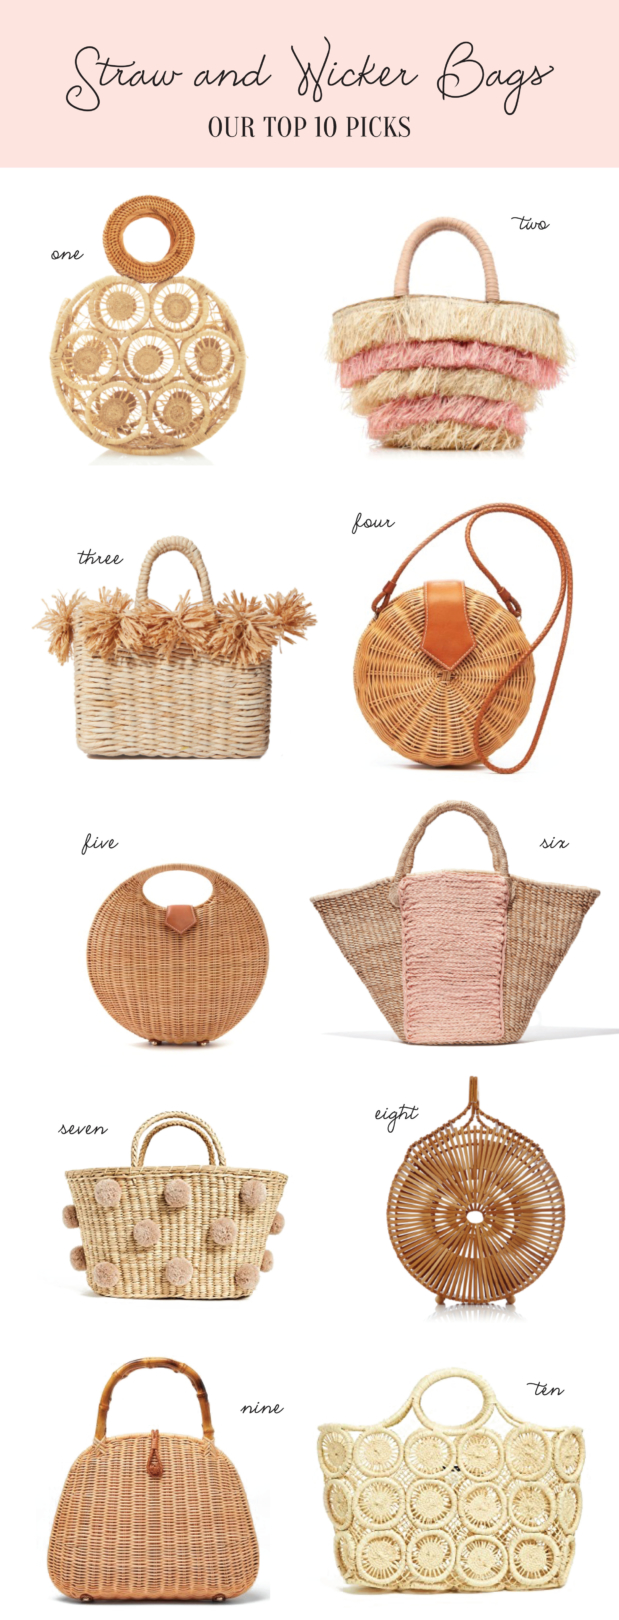 Palm Beach Lately's Favorite Straw and Wicker Bags